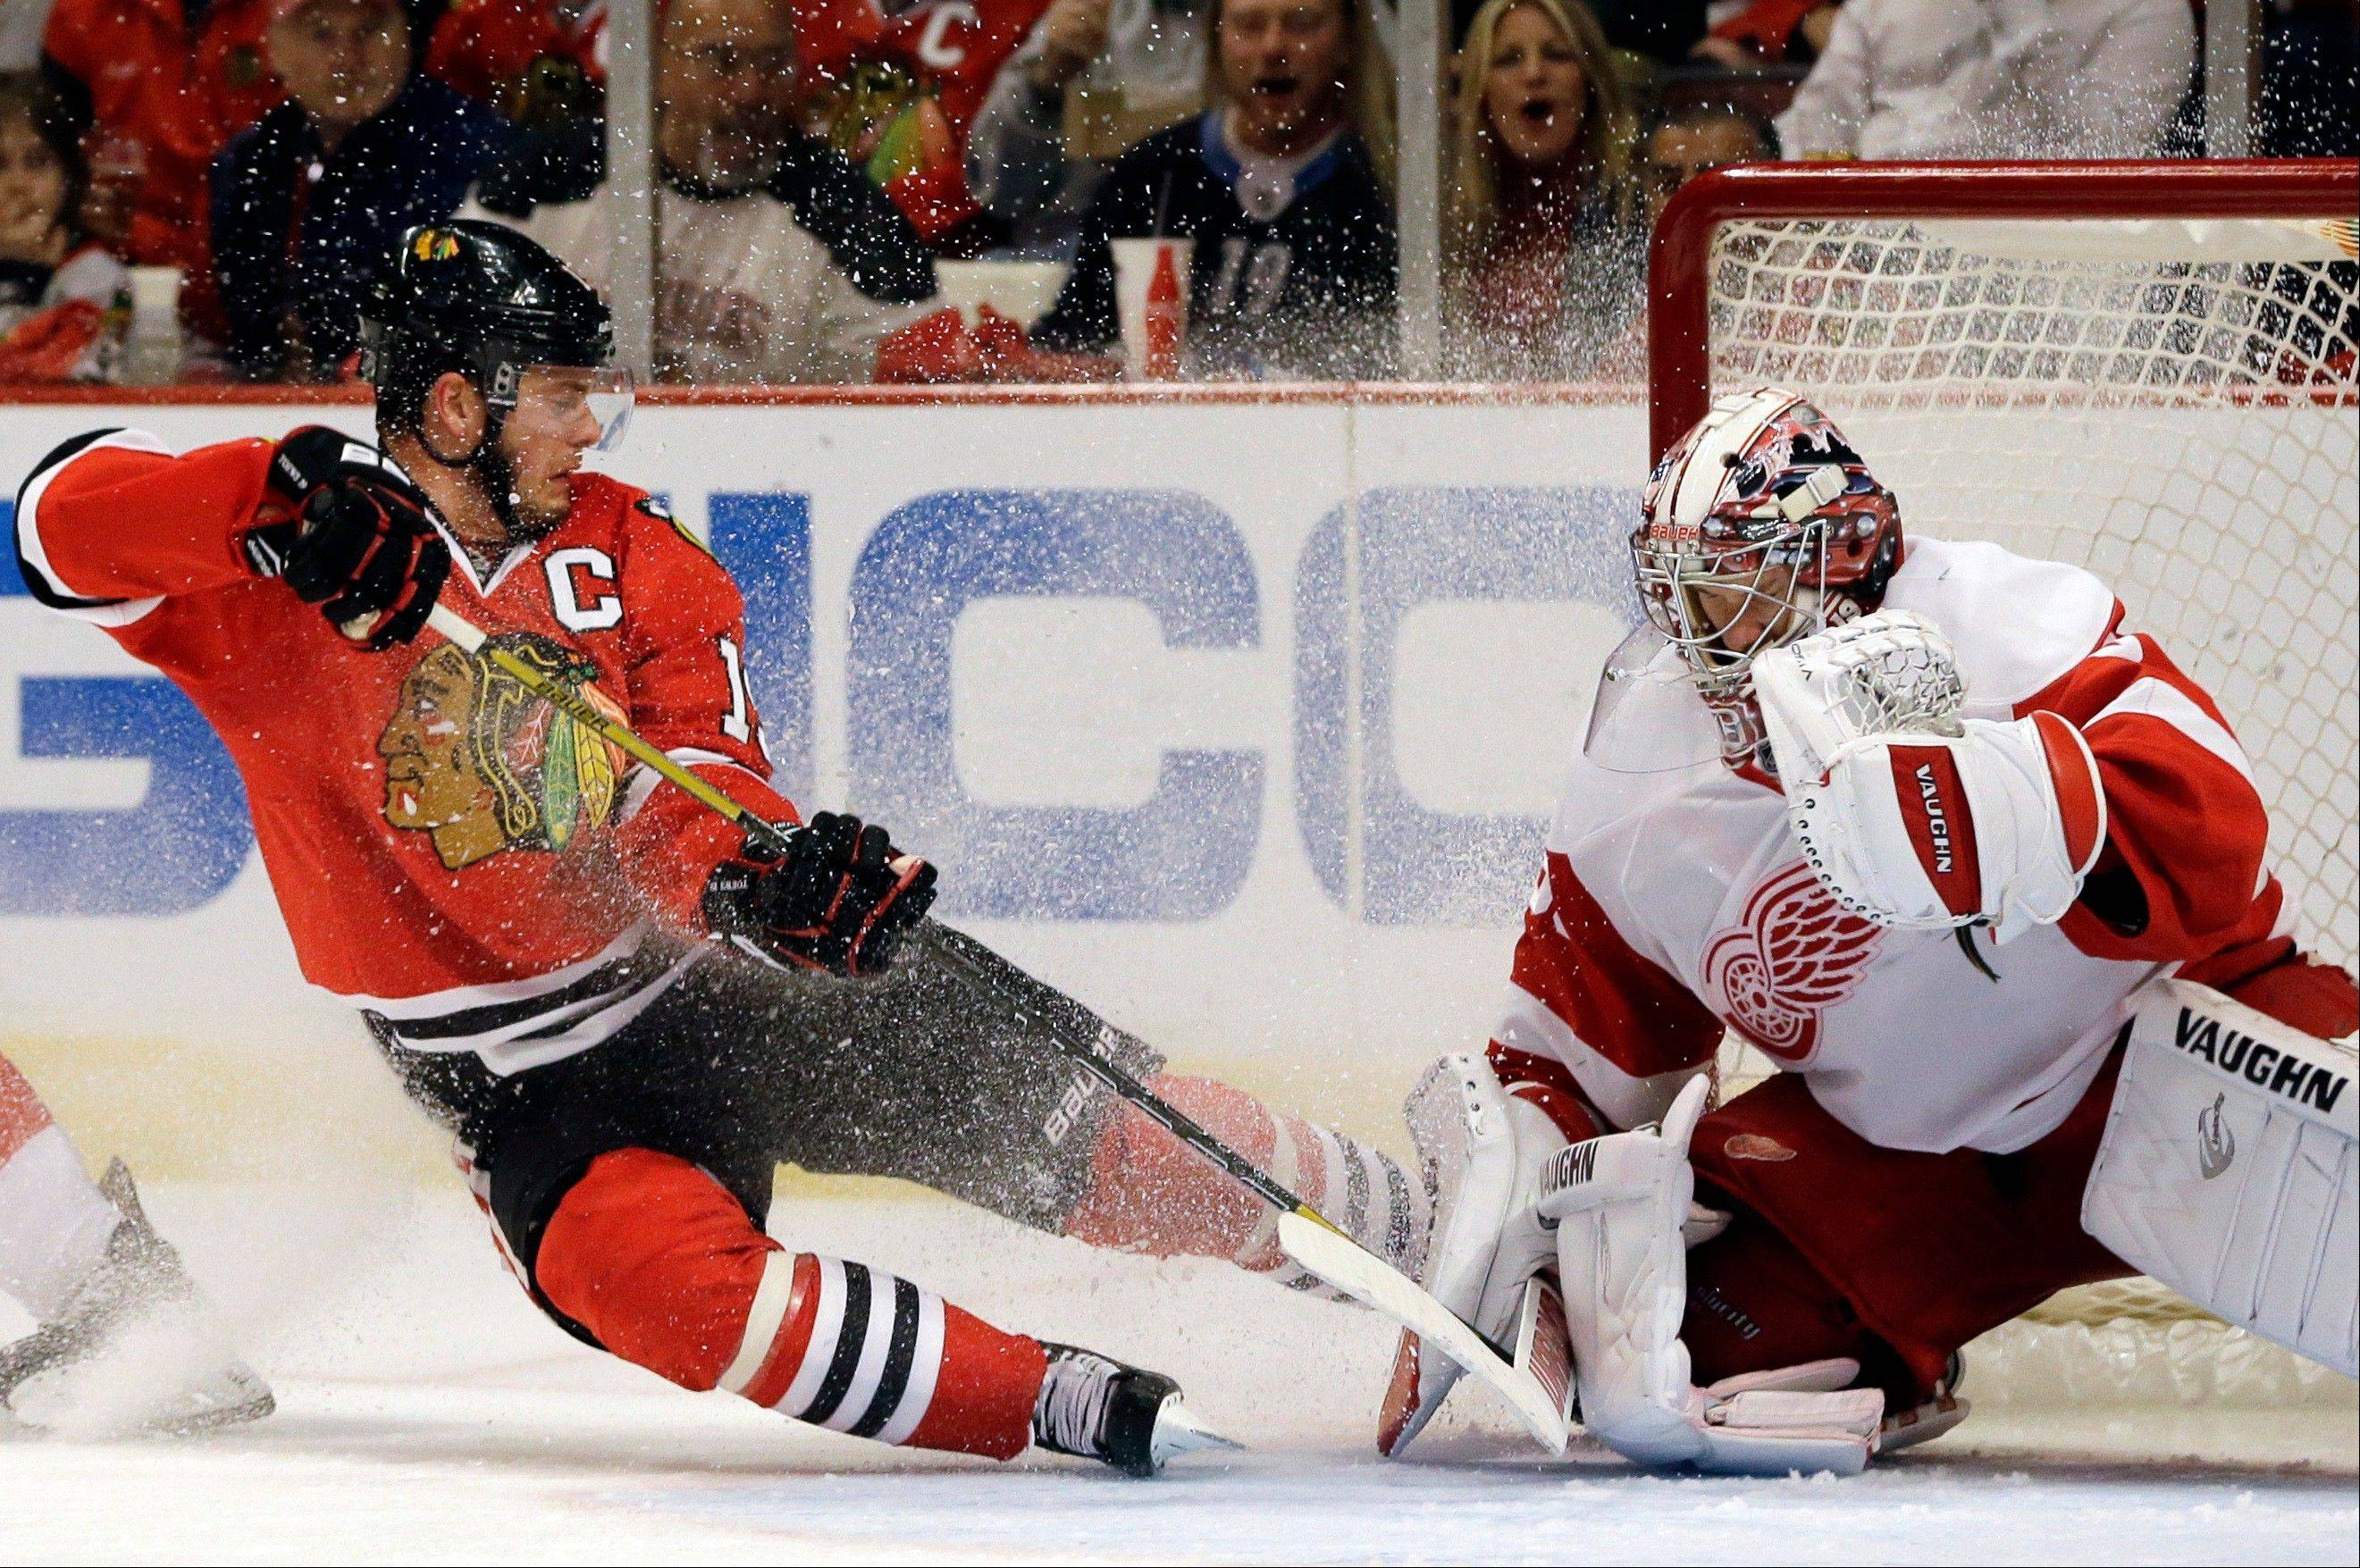 Detroit Red Wings goalie Jimmy Howard, right, saves a shot by Chicago Blackhawks� Jonathan Toews, left, during the second period of Game 5 of the NHL hockey Stanley Cup playoffs Western Conference semifinals in Chicago, Saturday, May 25, 2013. (AP Photo/Nam Y. Huh)